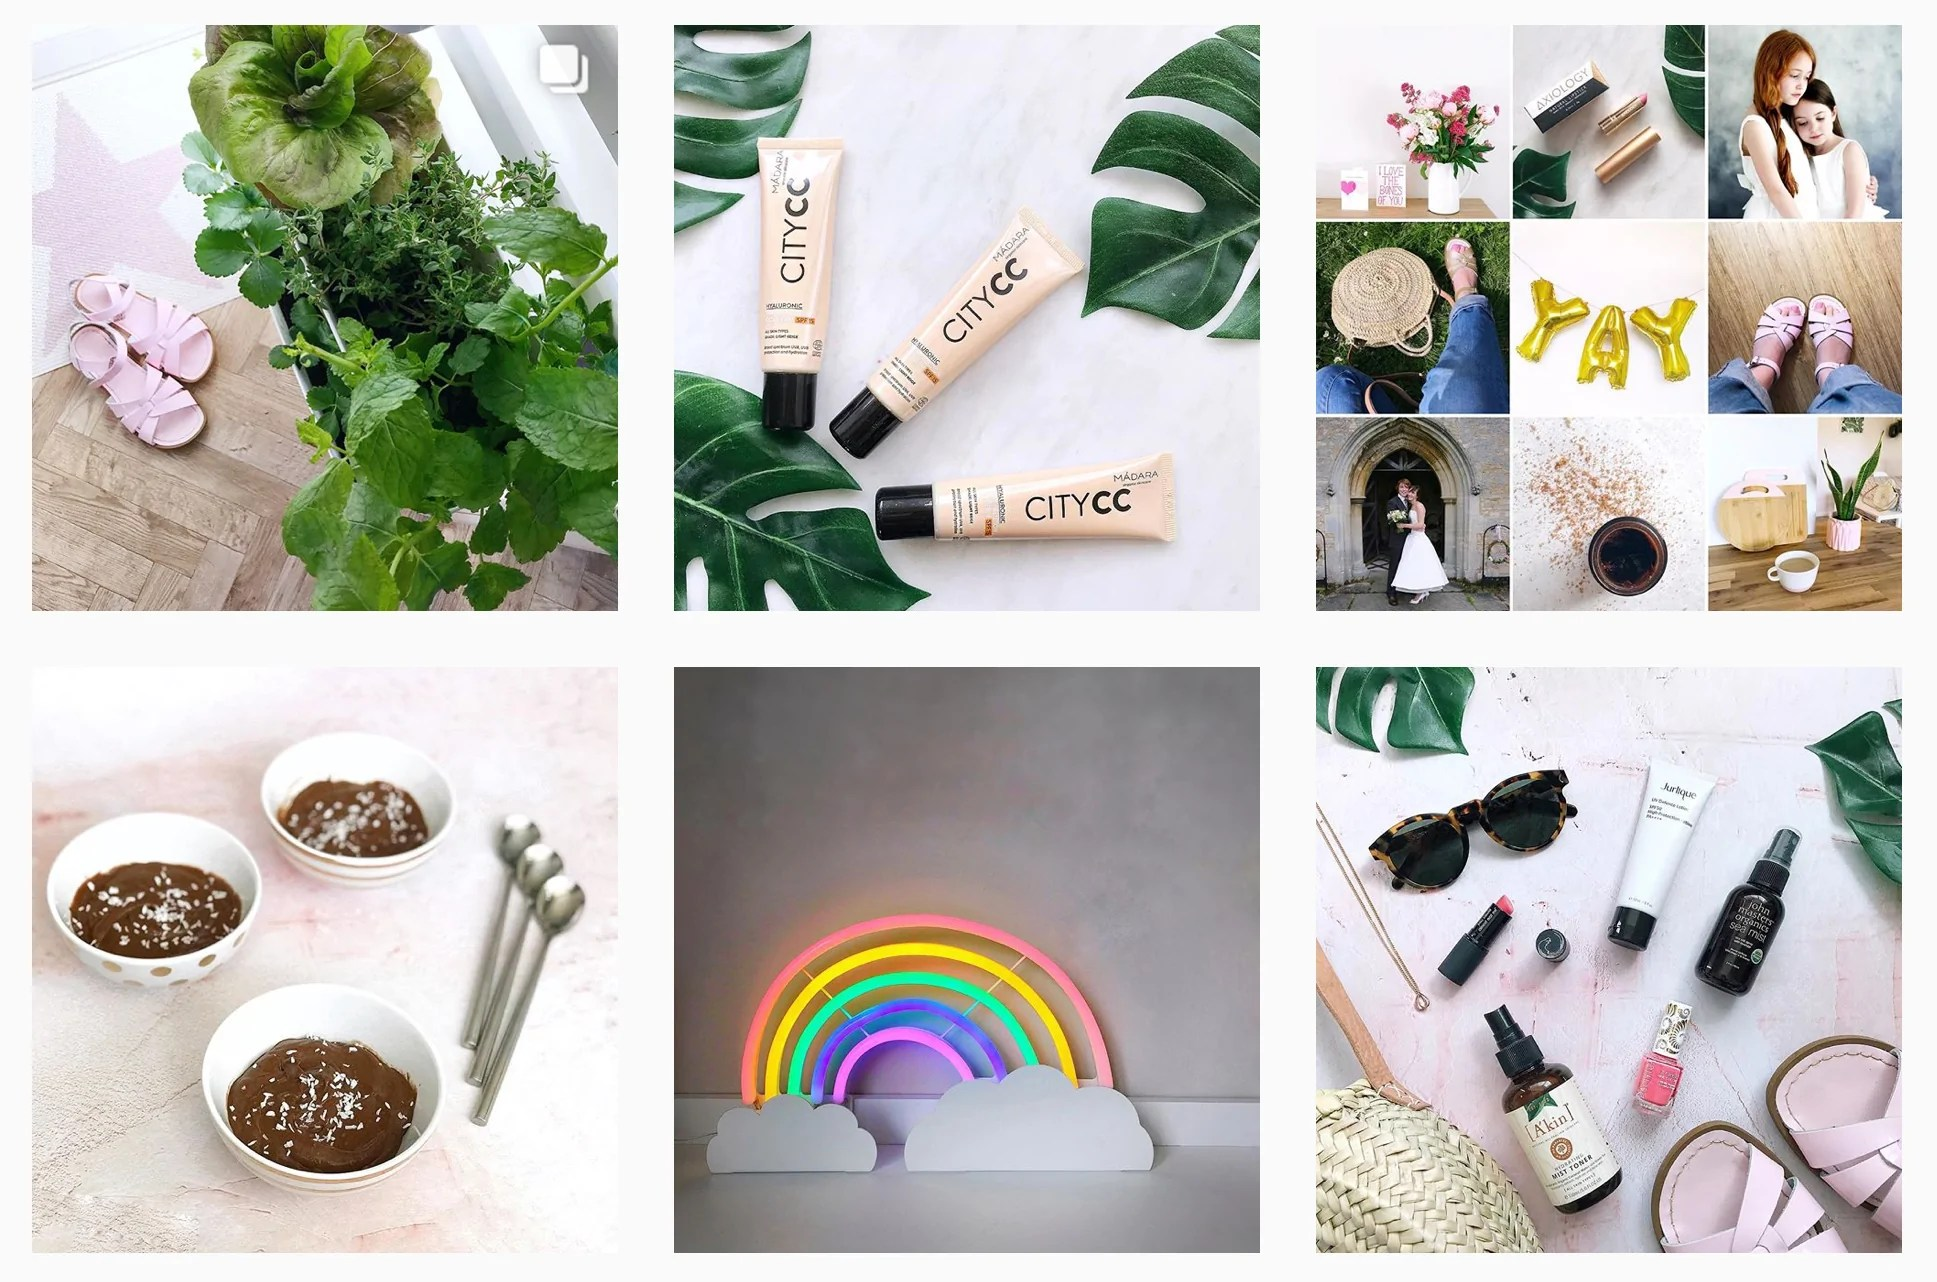 Lifestyle Blog Instagram 5 Instagram Accounts About A Sustainable Lifestyle Slow